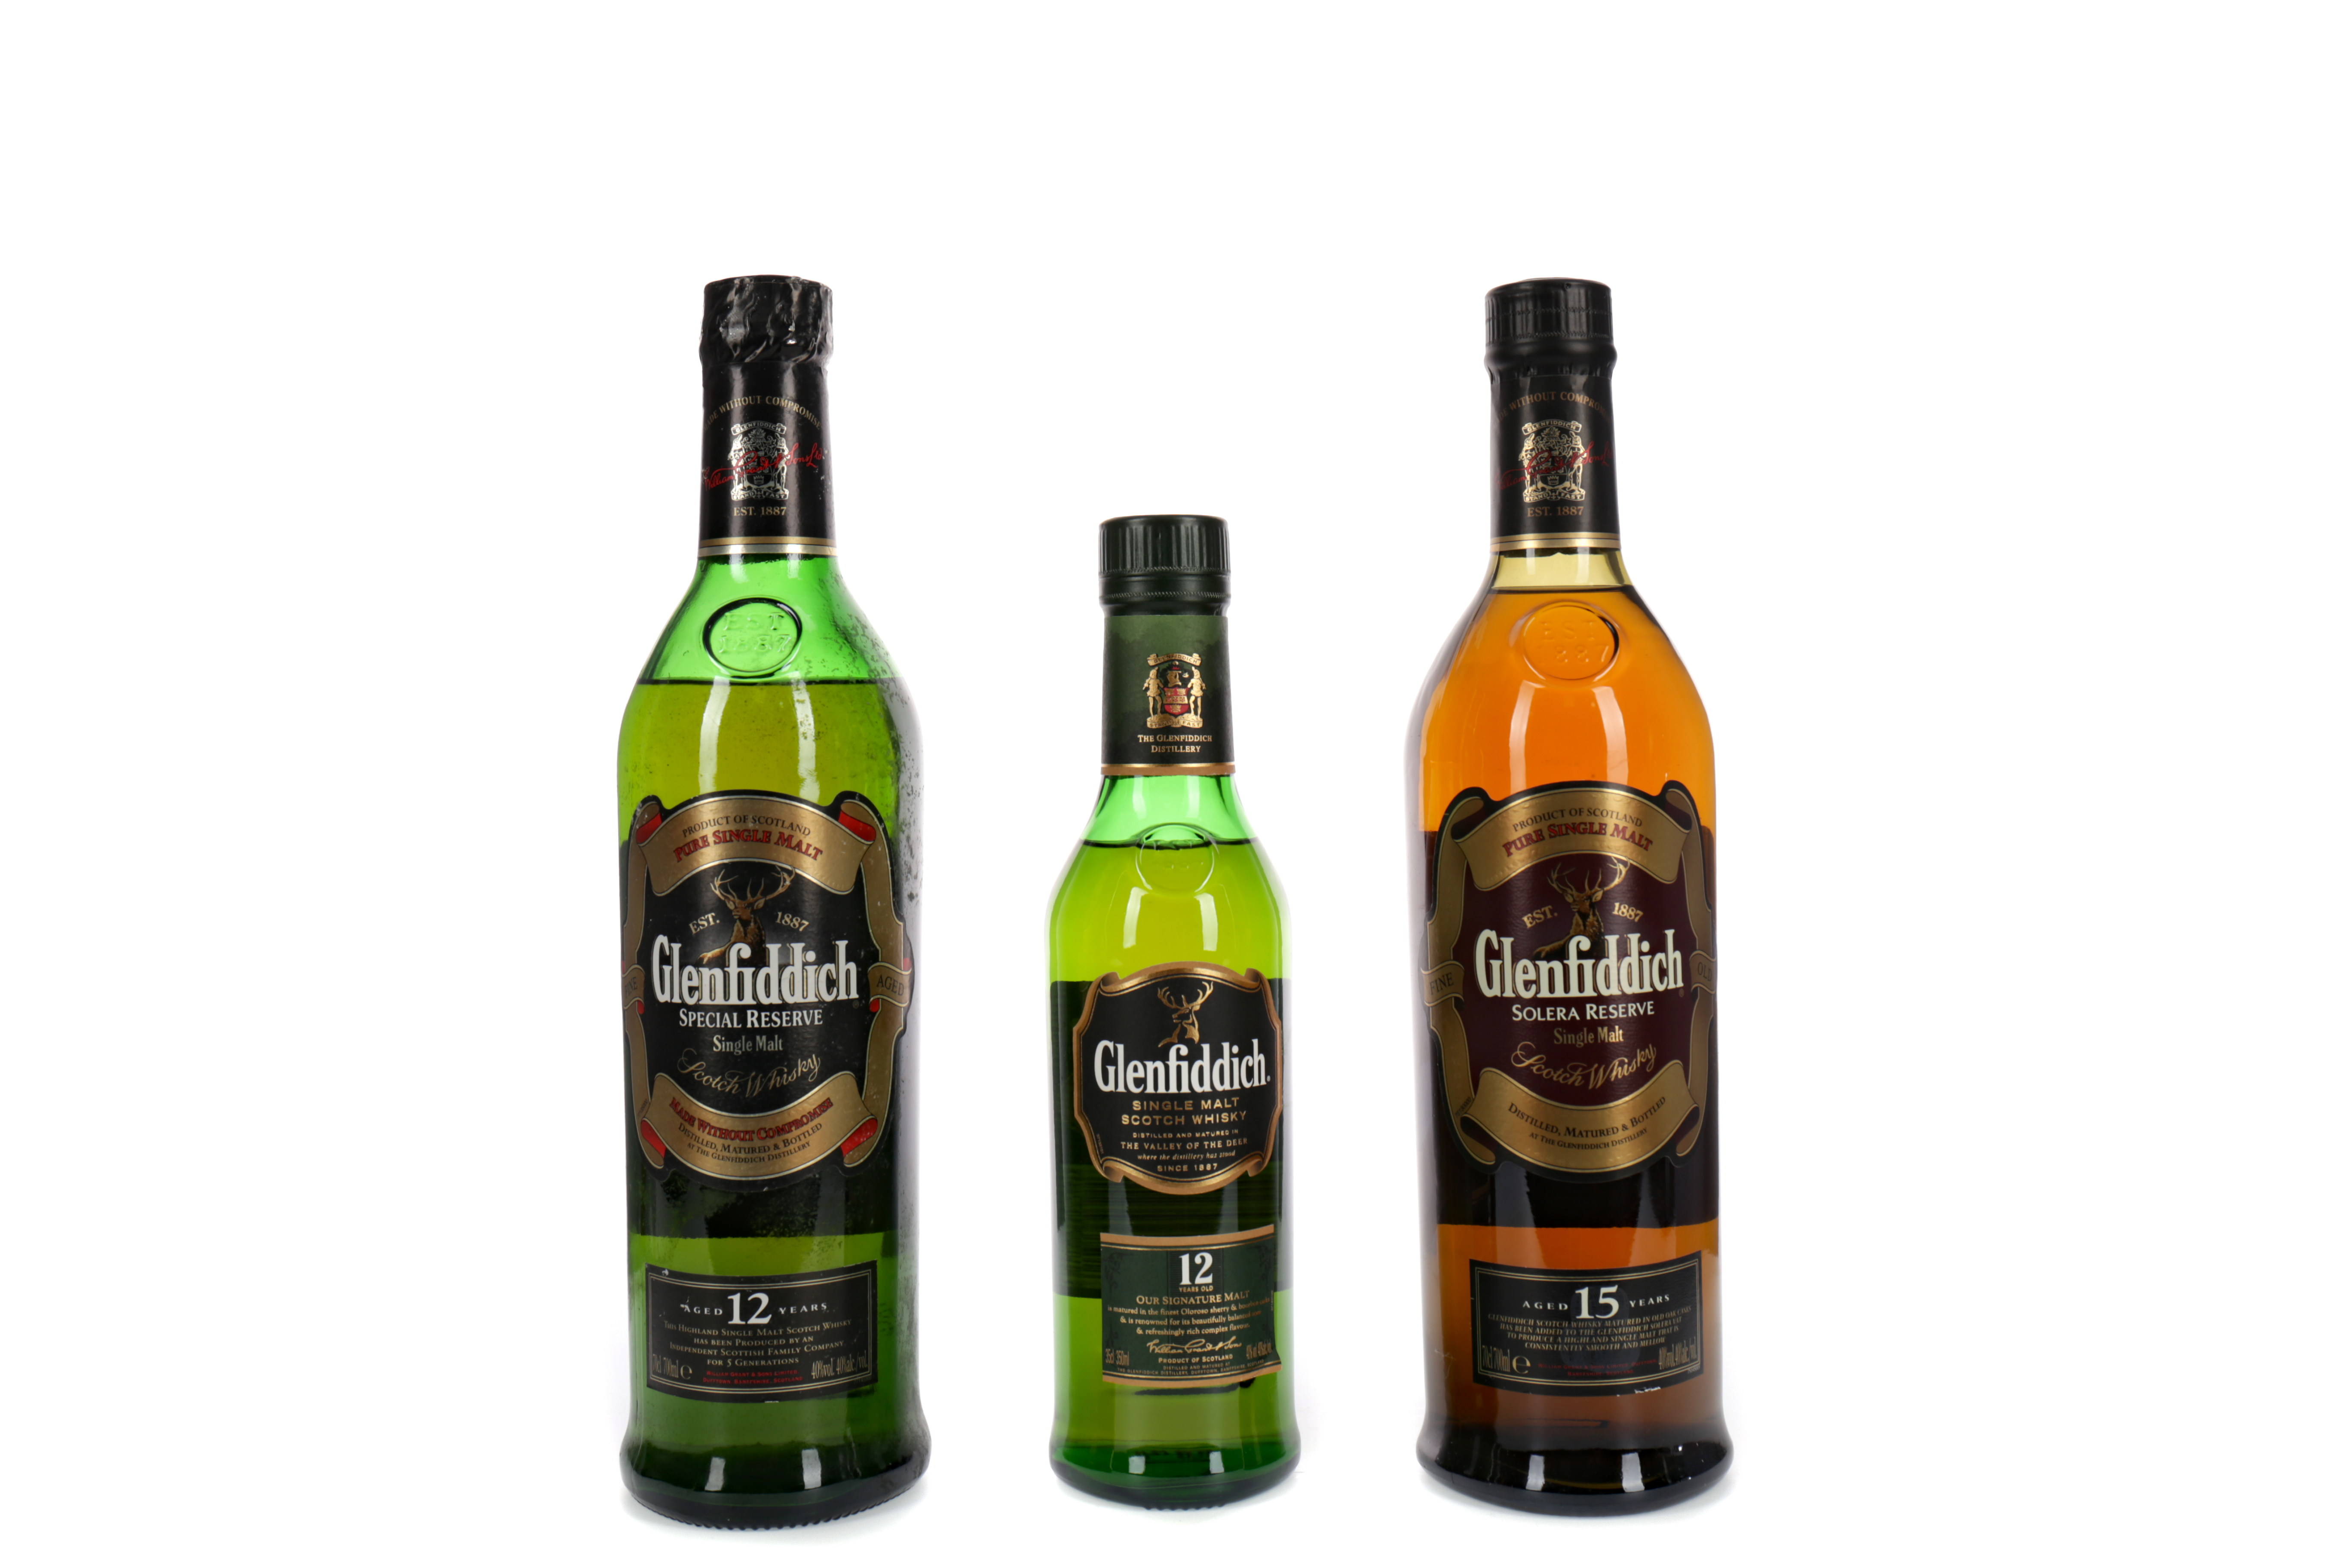 GLENFIDDICH AGED 15 YEARS, AND ONE & A HALF BOTTLES OF GLENFIDDICH AGED 12 YEARS